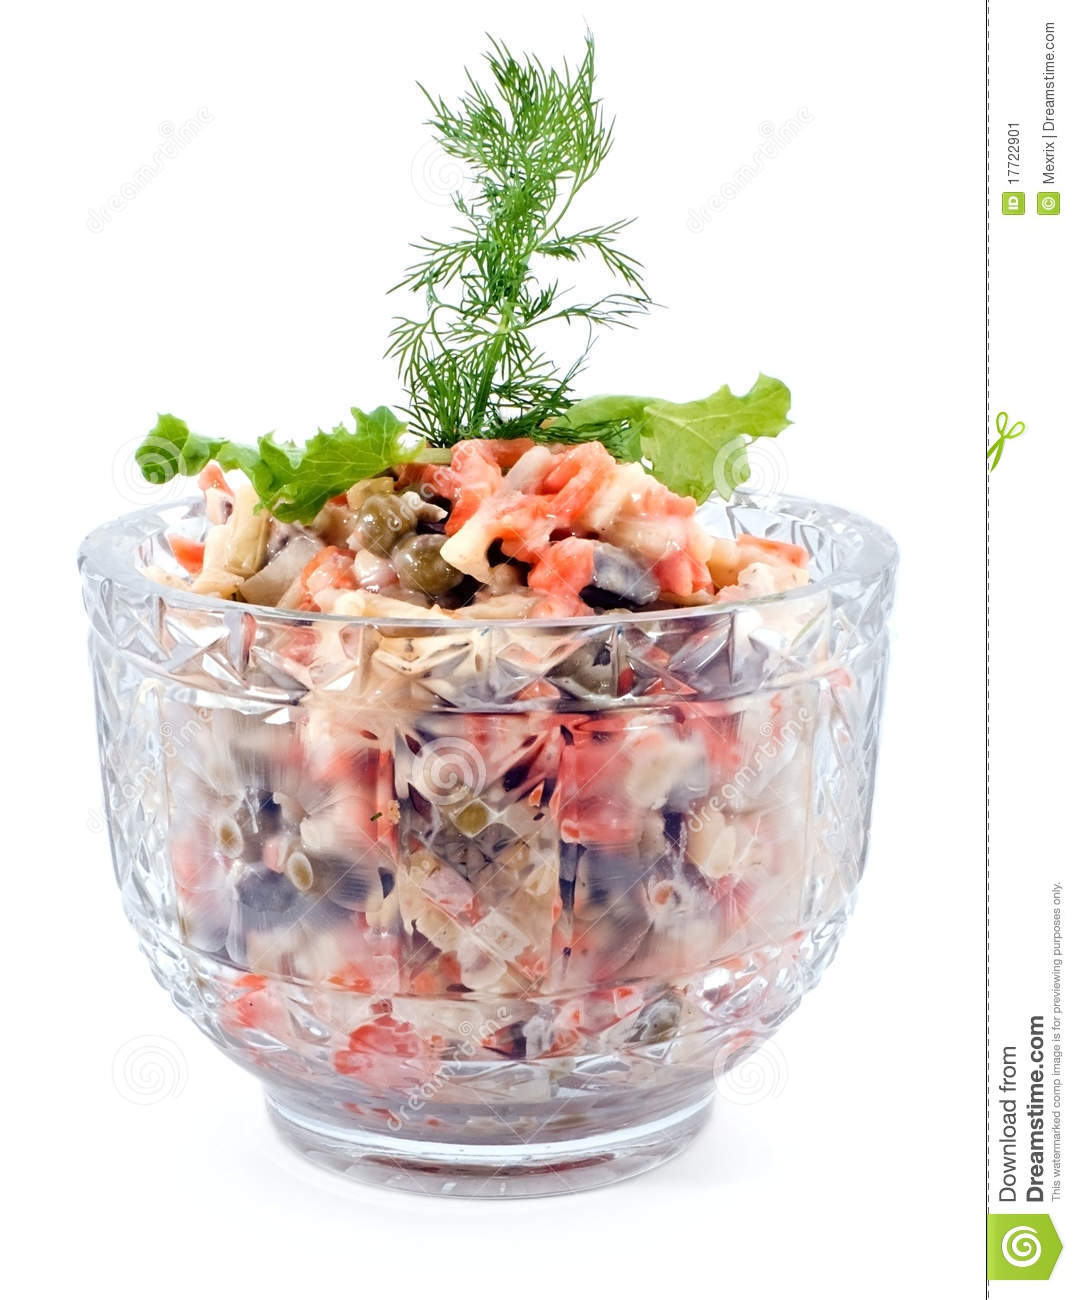 Salad with liver meat, carrot, peas and potato isolated on white.